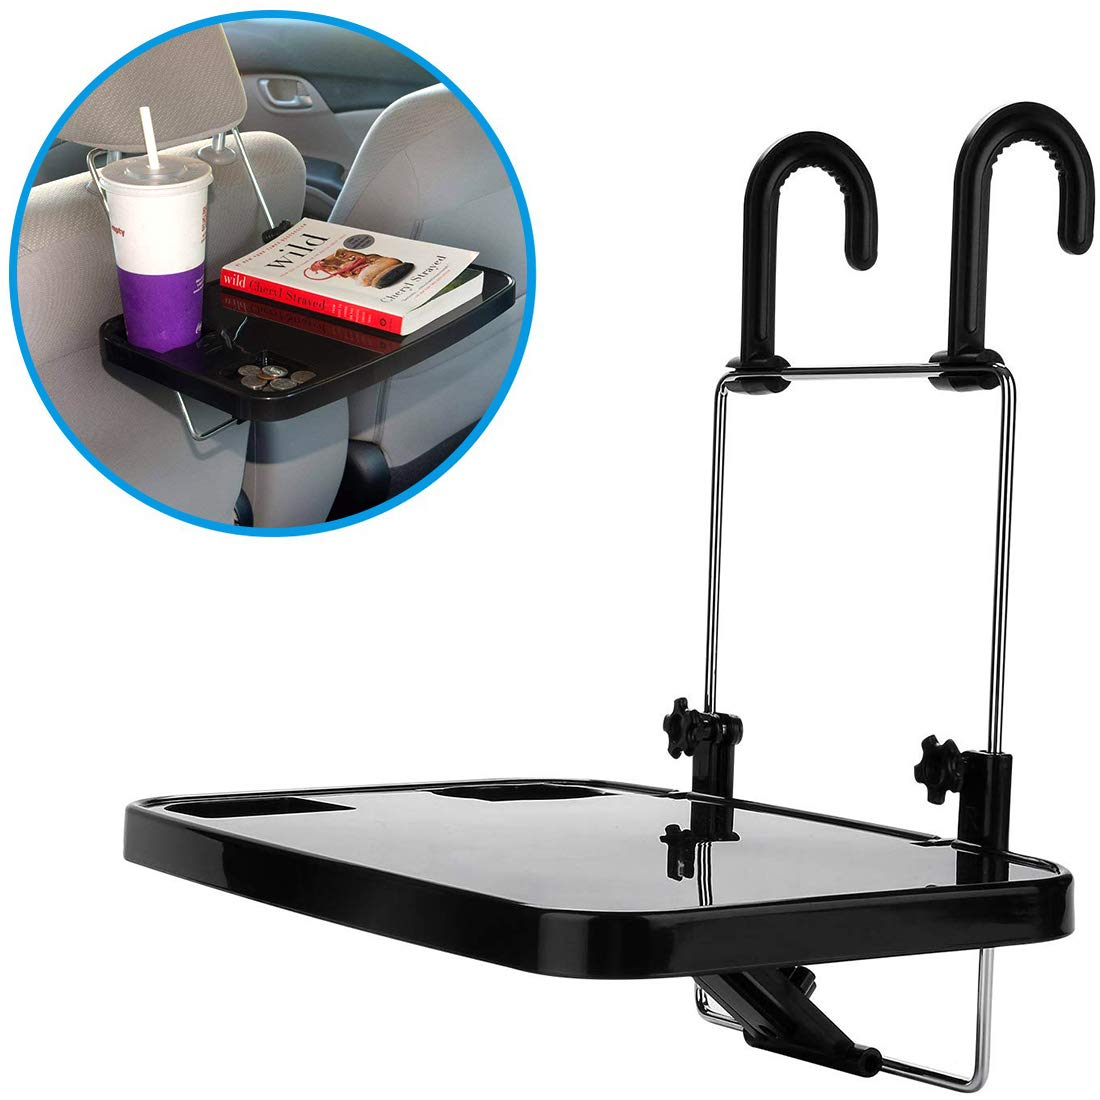 ifory Multi-Functional Tablet Holder, Portable Car Vehicle Seat Back Mount Tray, Foldable Hanging Laptop Desk and Car Dining Food Drink Desk Cup Holder